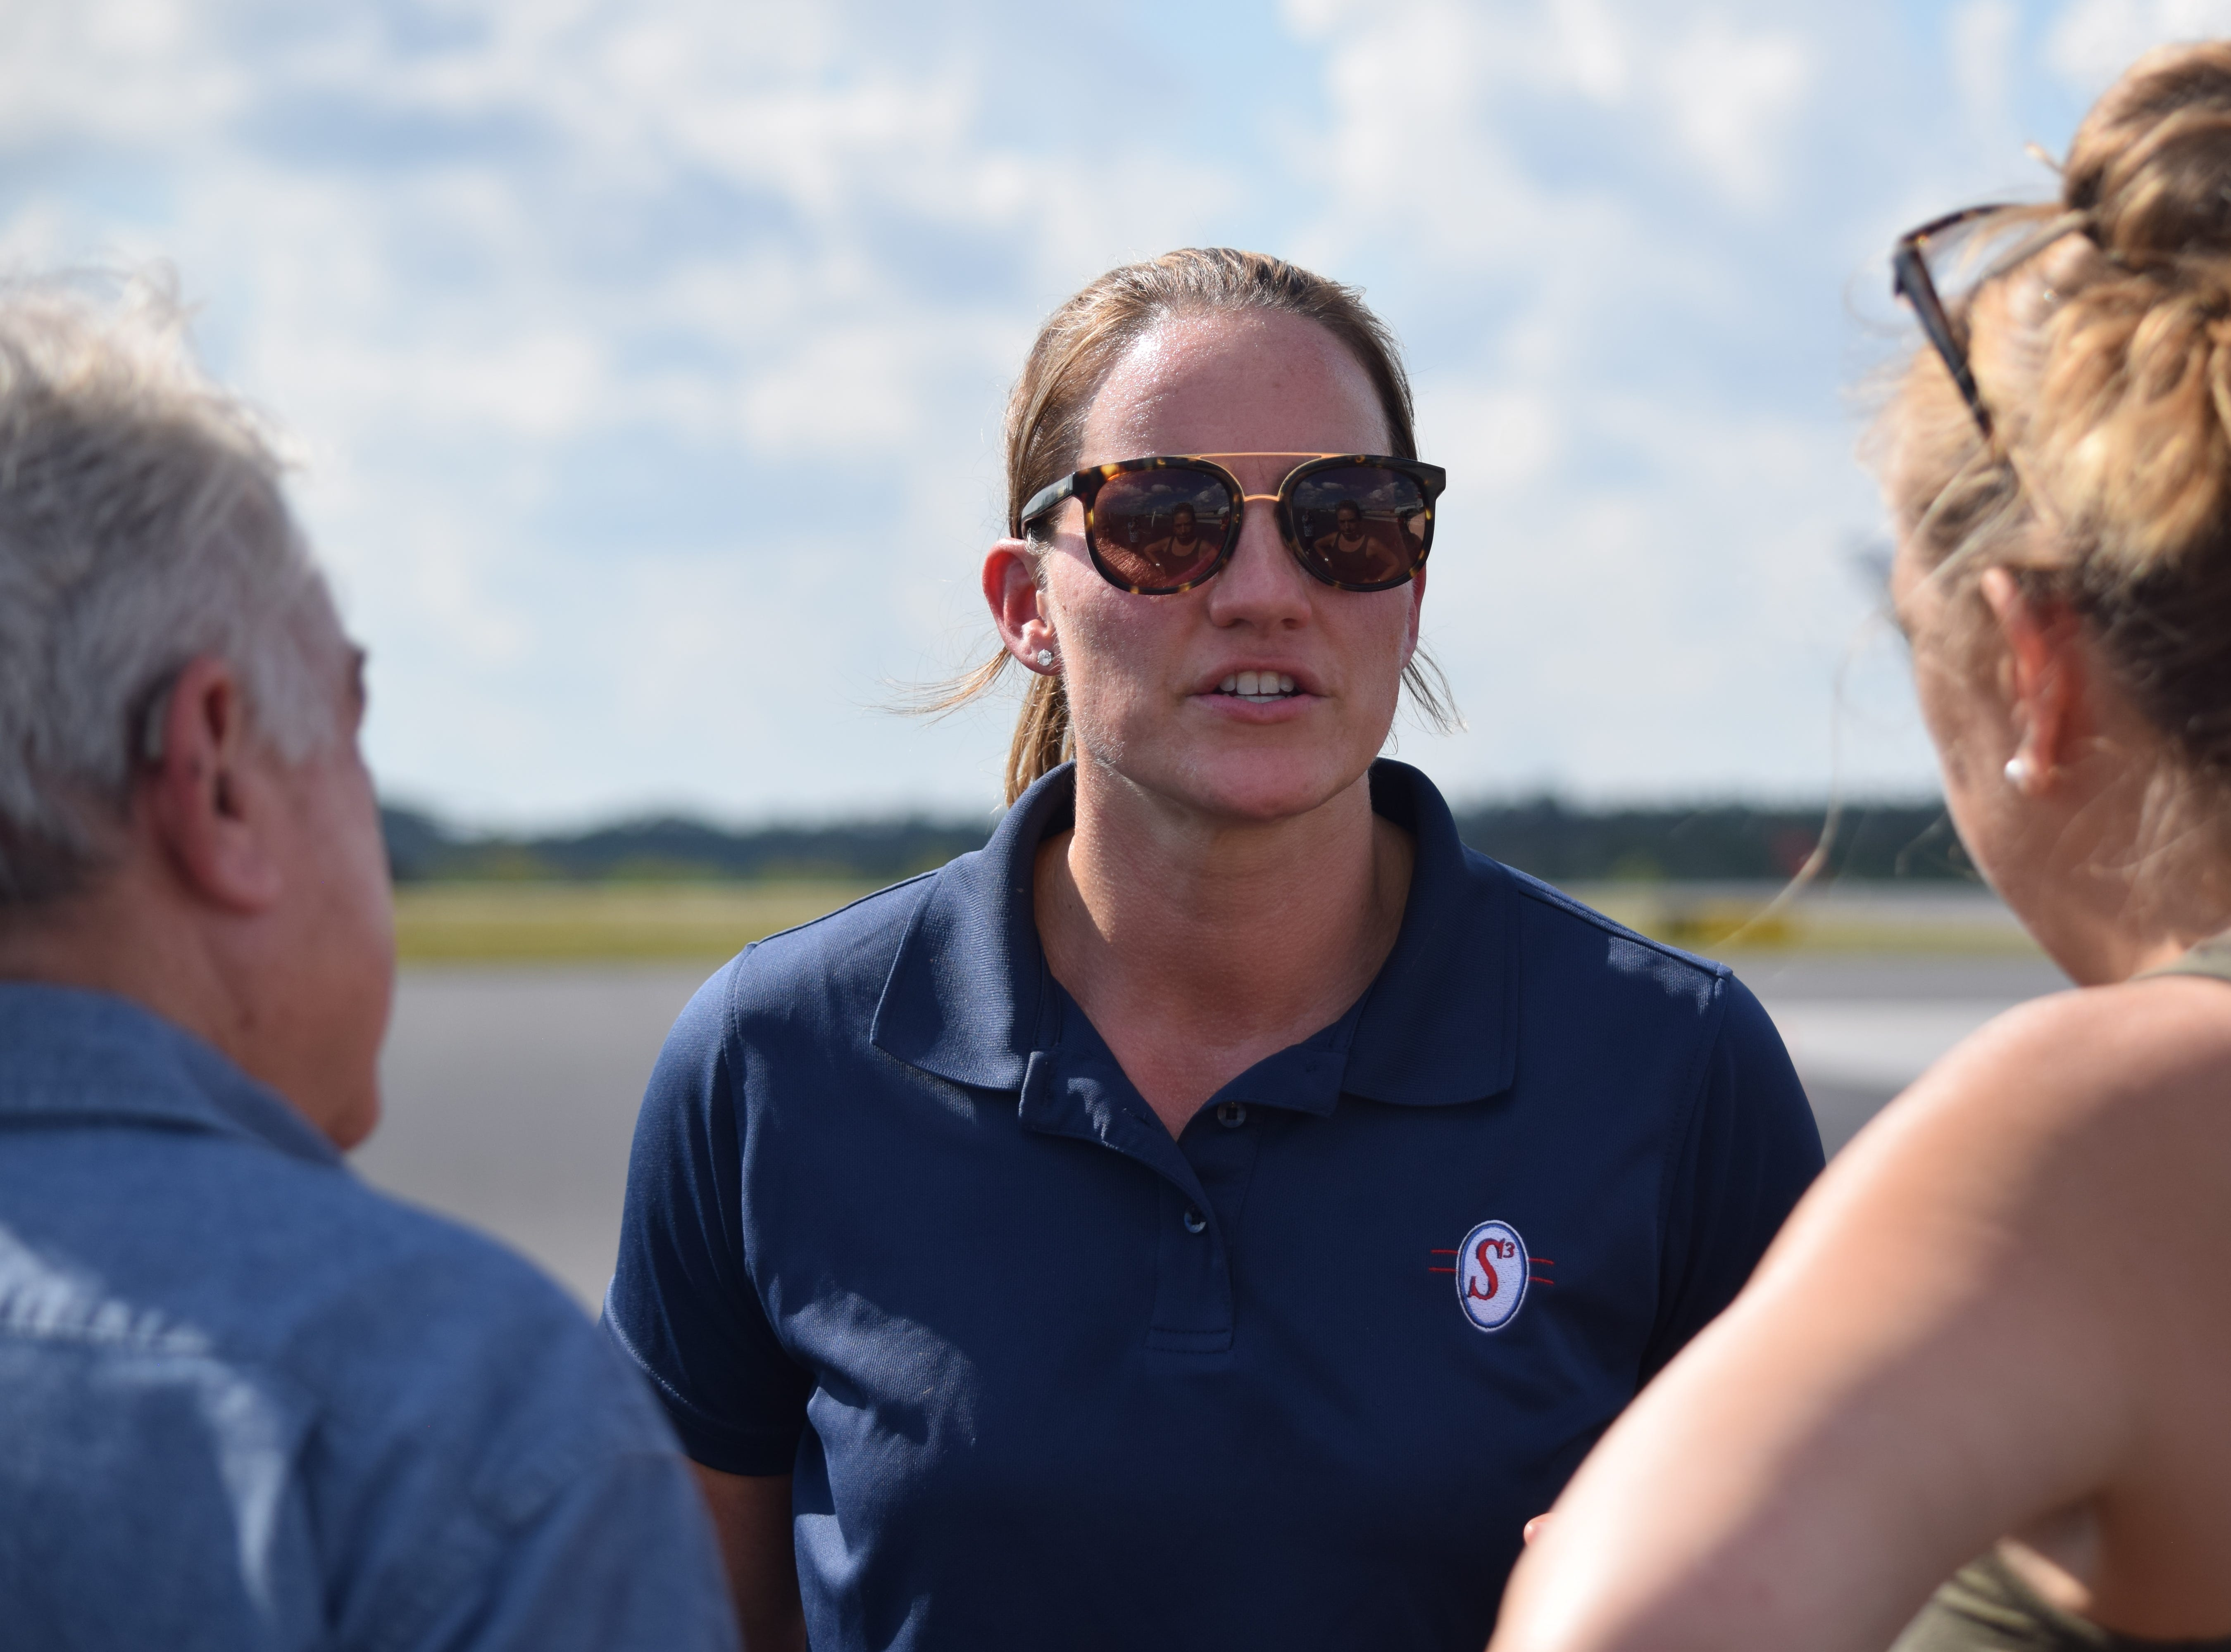 Jessica Mates pilots a trip for Operation Airdrop to take supplies to Port St. Joe after Hurricane Michael ravaged the coast.